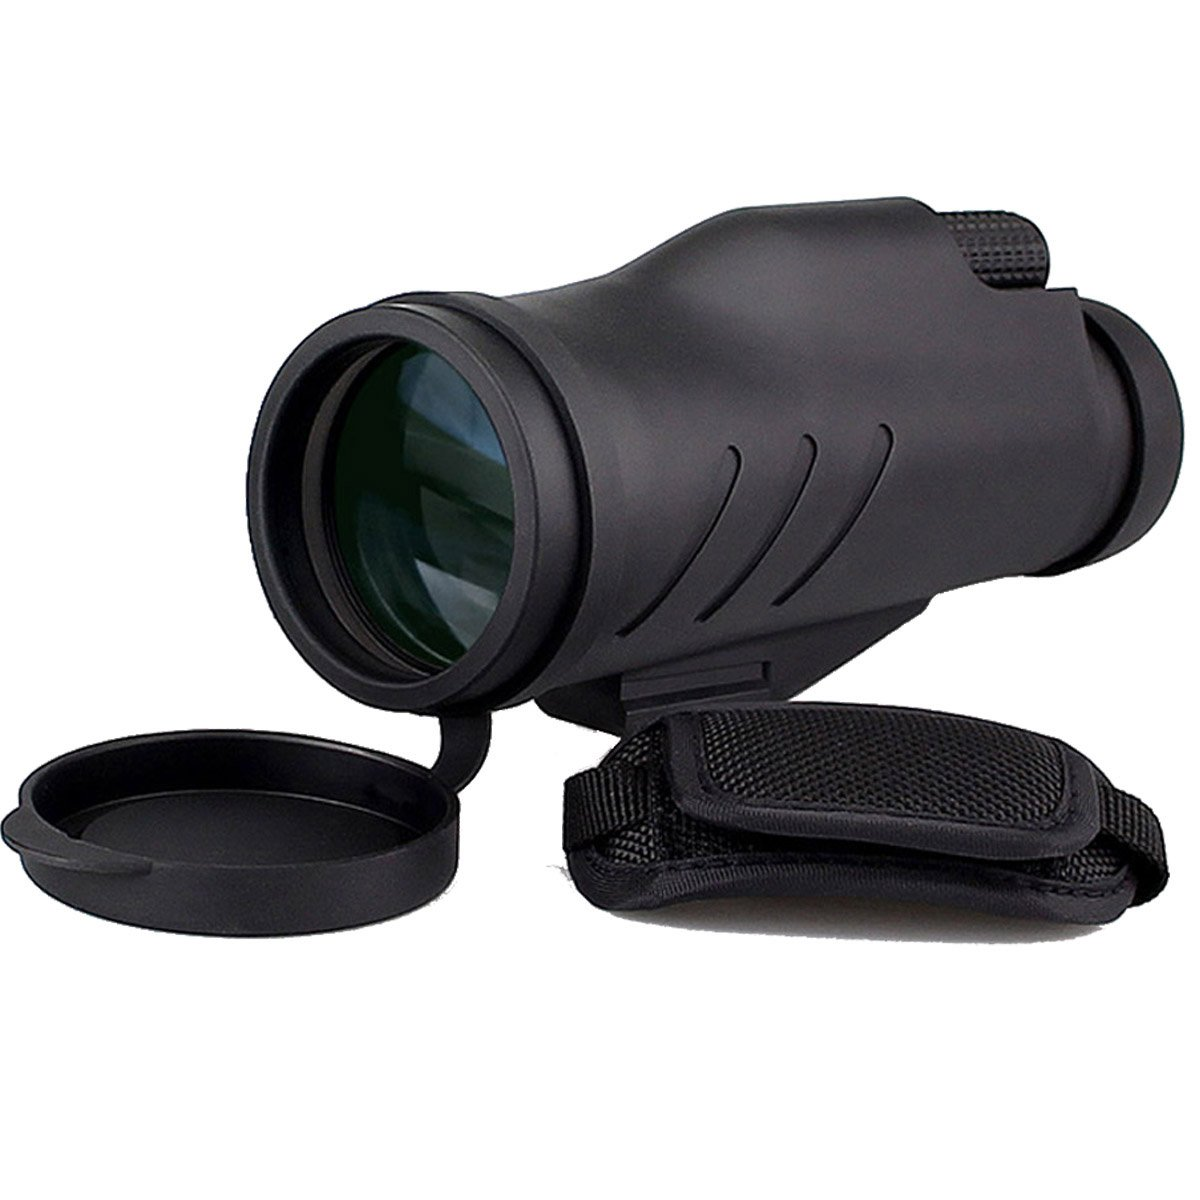 SVBONY SV32 Monocular Telescope Waterproof monoculars 10x50 Scope for Bird Watching Hunting Camping Hiking Concerts 23mm Large Eyepiece Fast Focus